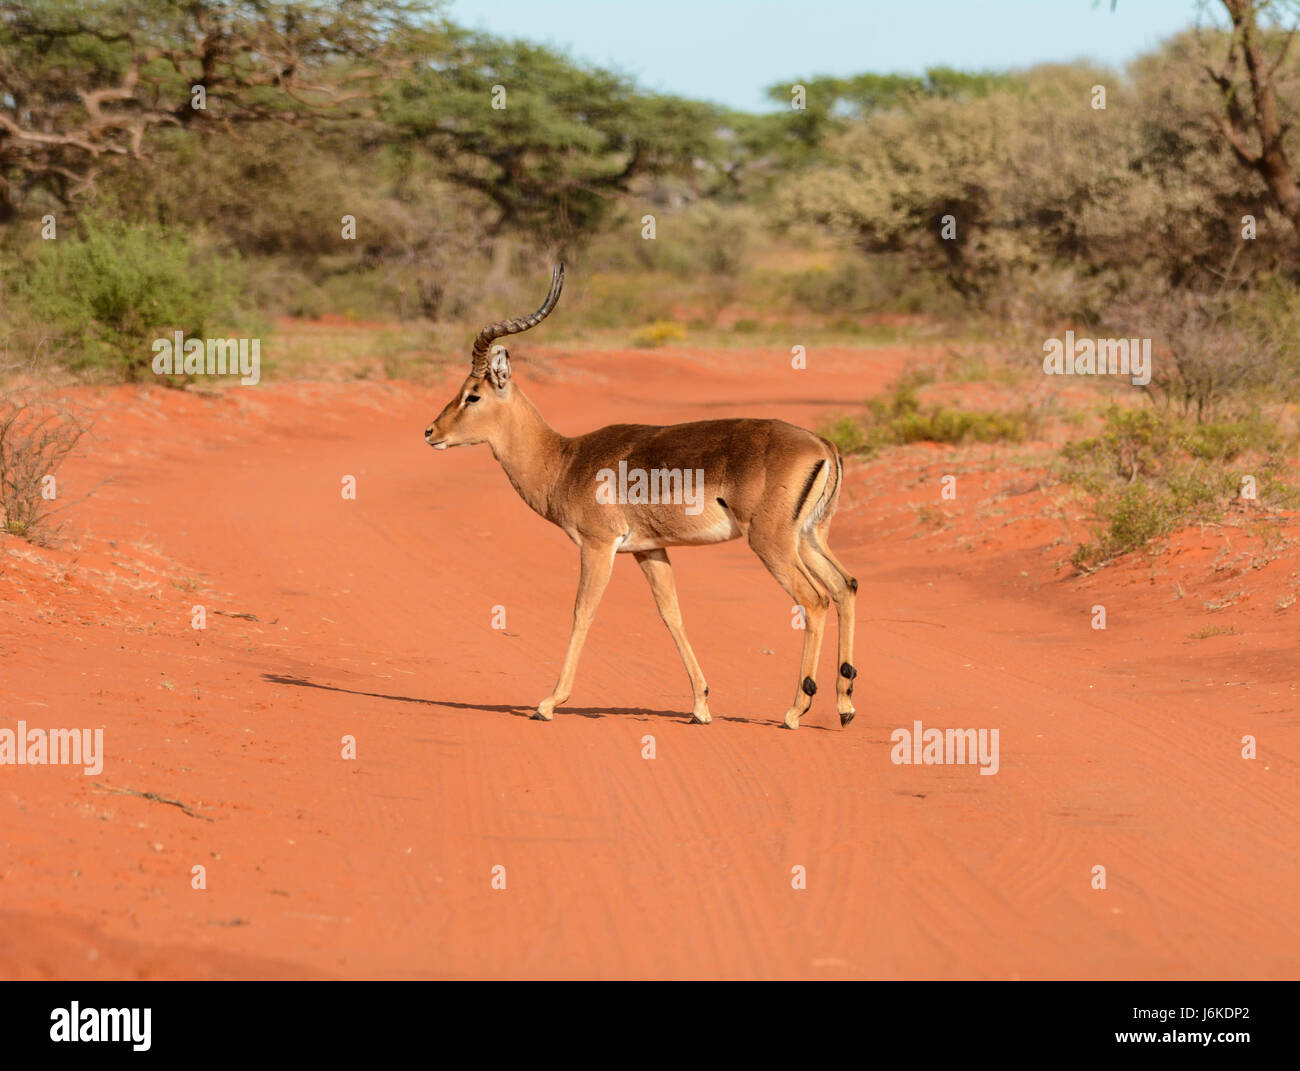 Gazelle Road Stock Photos Images Alamy Camp Roadbike Impala Red A Male Antelope On Dirt Track In Southern African Savanna Image